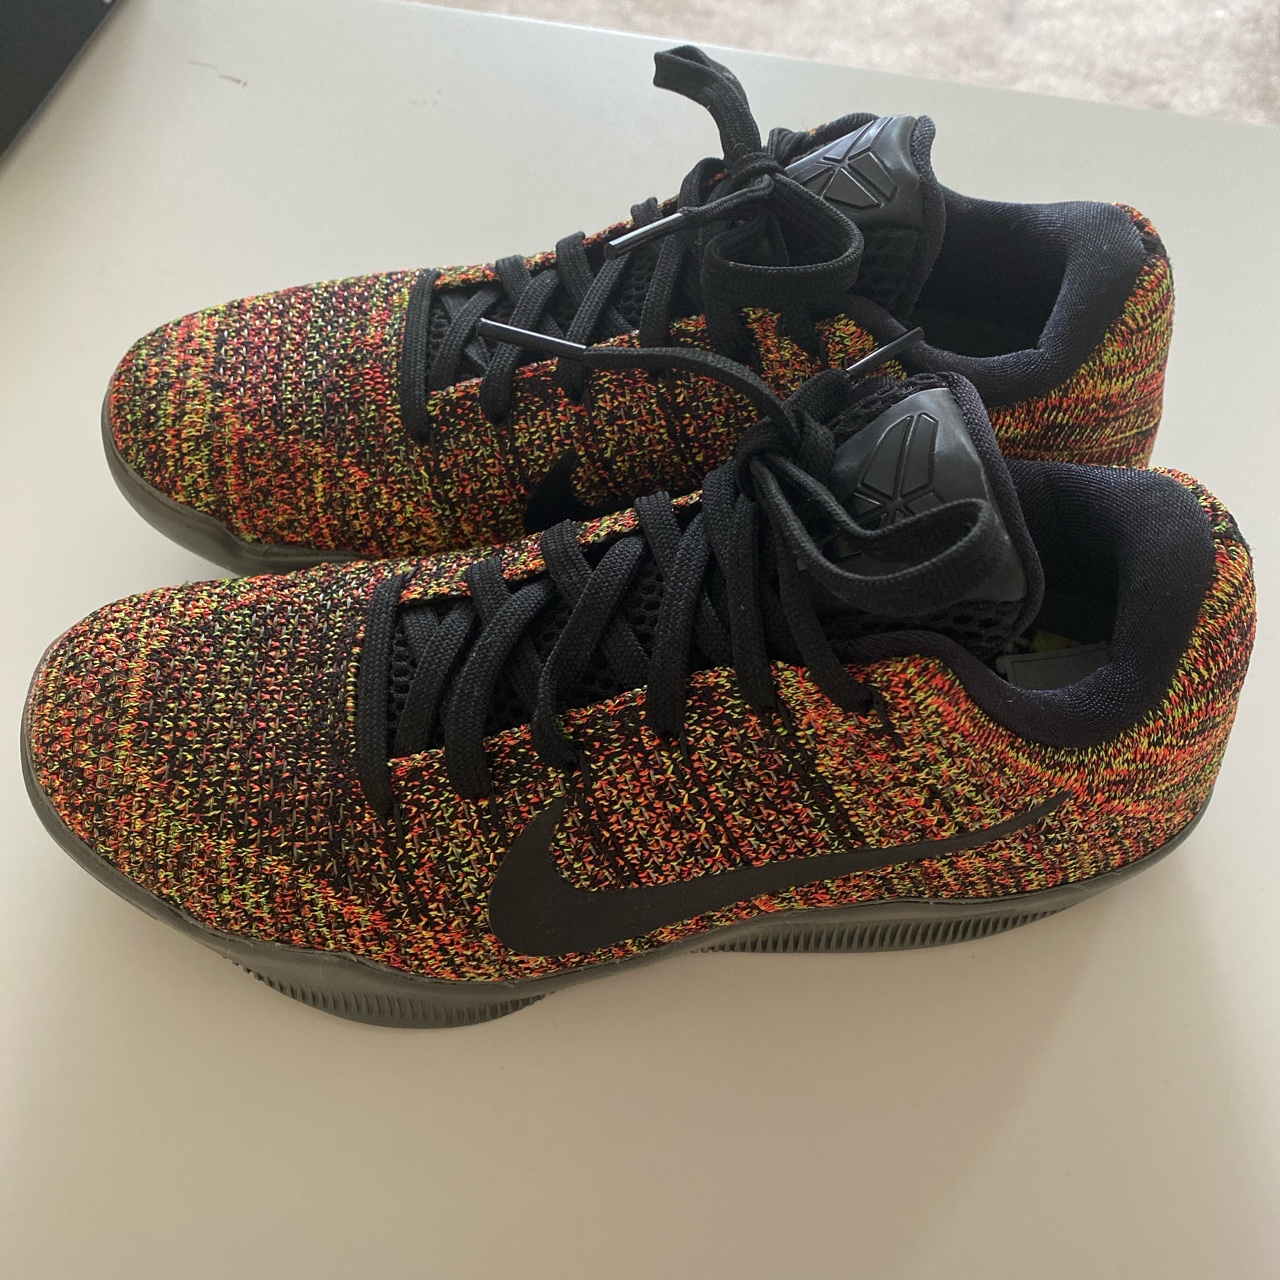 4813 1984 paperweight essay.php]1984 Nike Women s Casual 7 5 Women s US Shoe Size for sale eBay